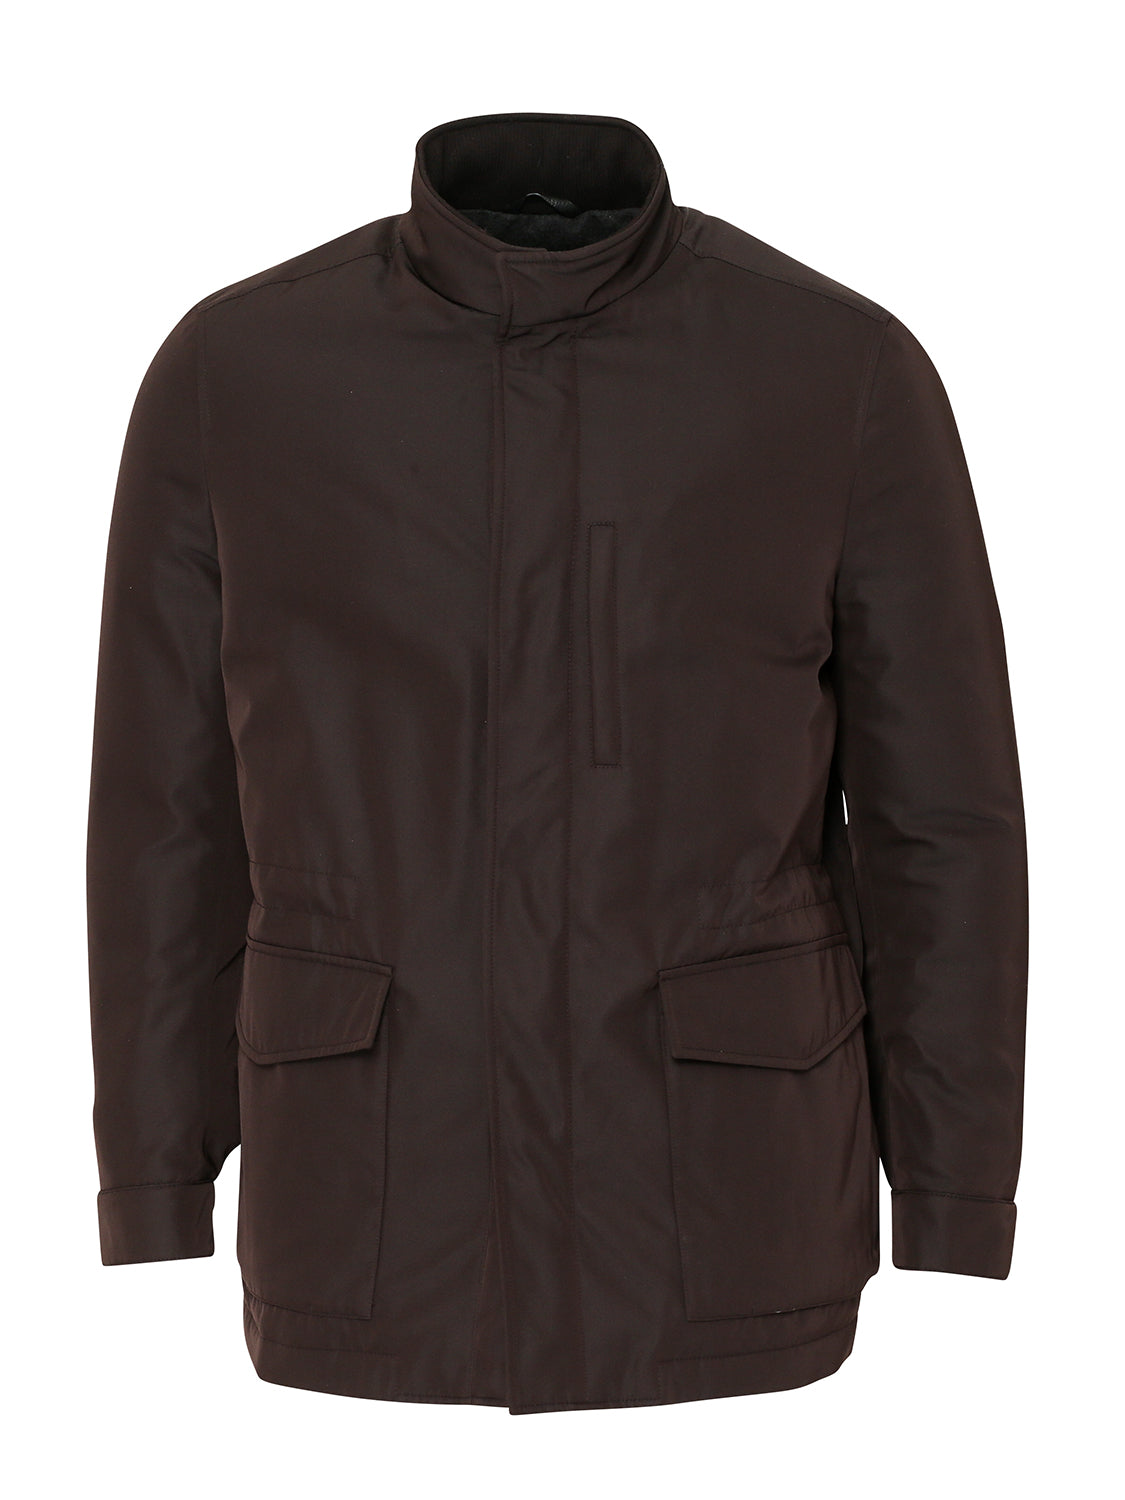 Brioni Coat (Brown) - Union 22